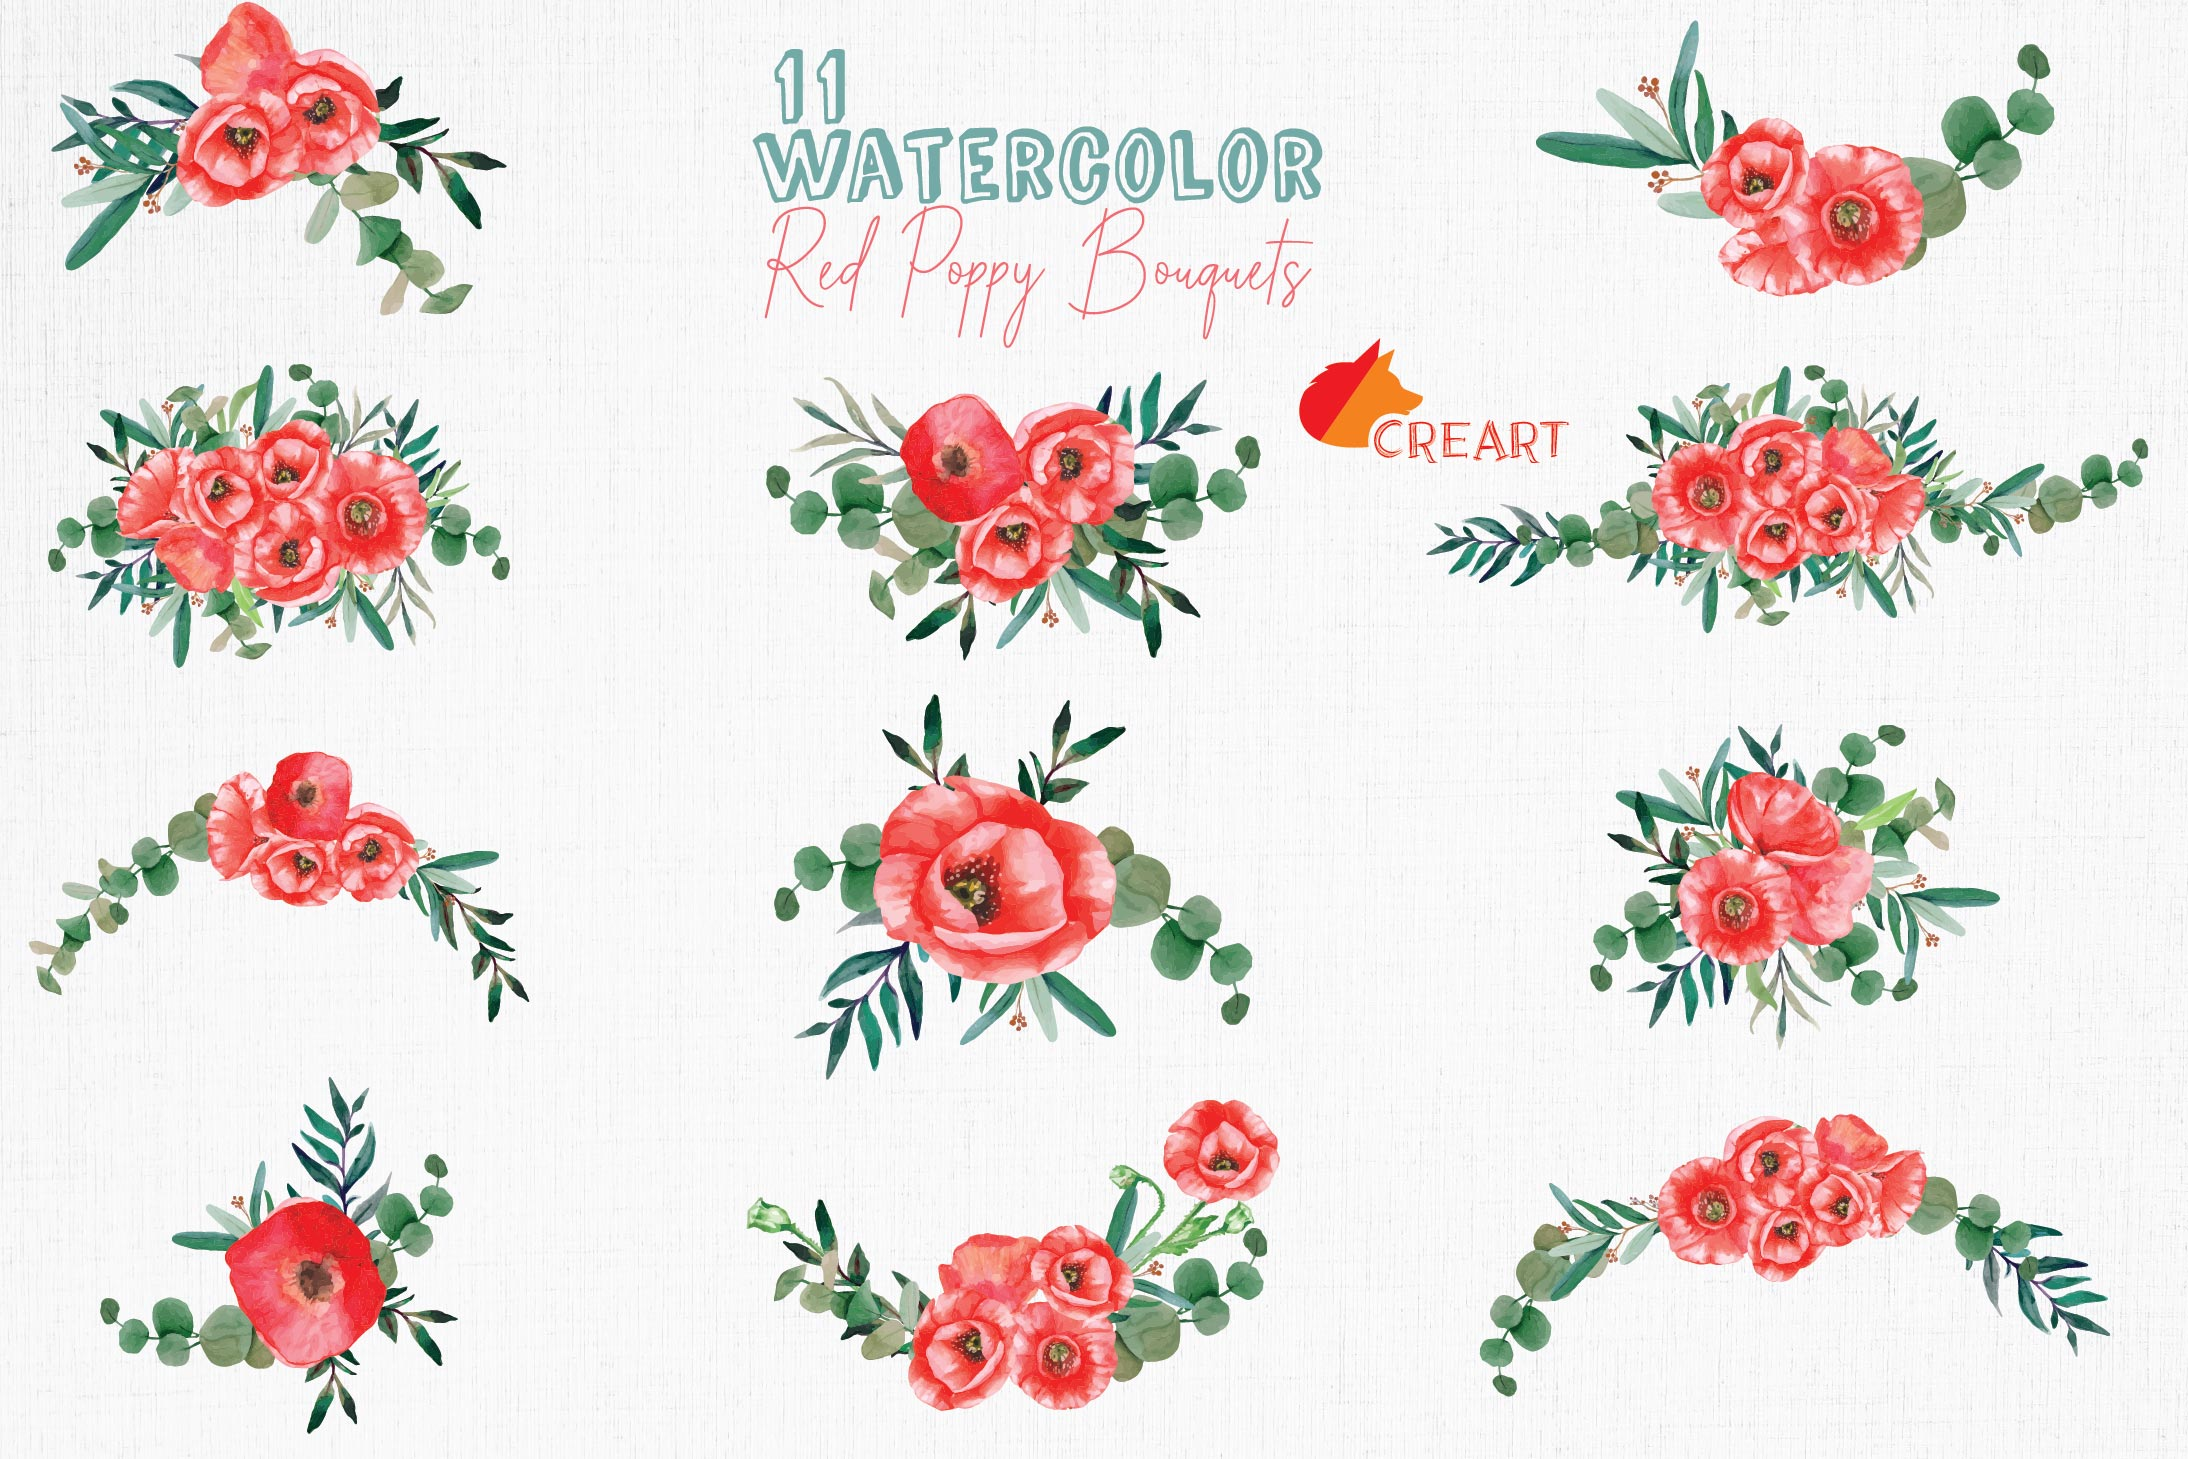 Red poppies floral watercolor wedding bouquets, floral decor example image 2